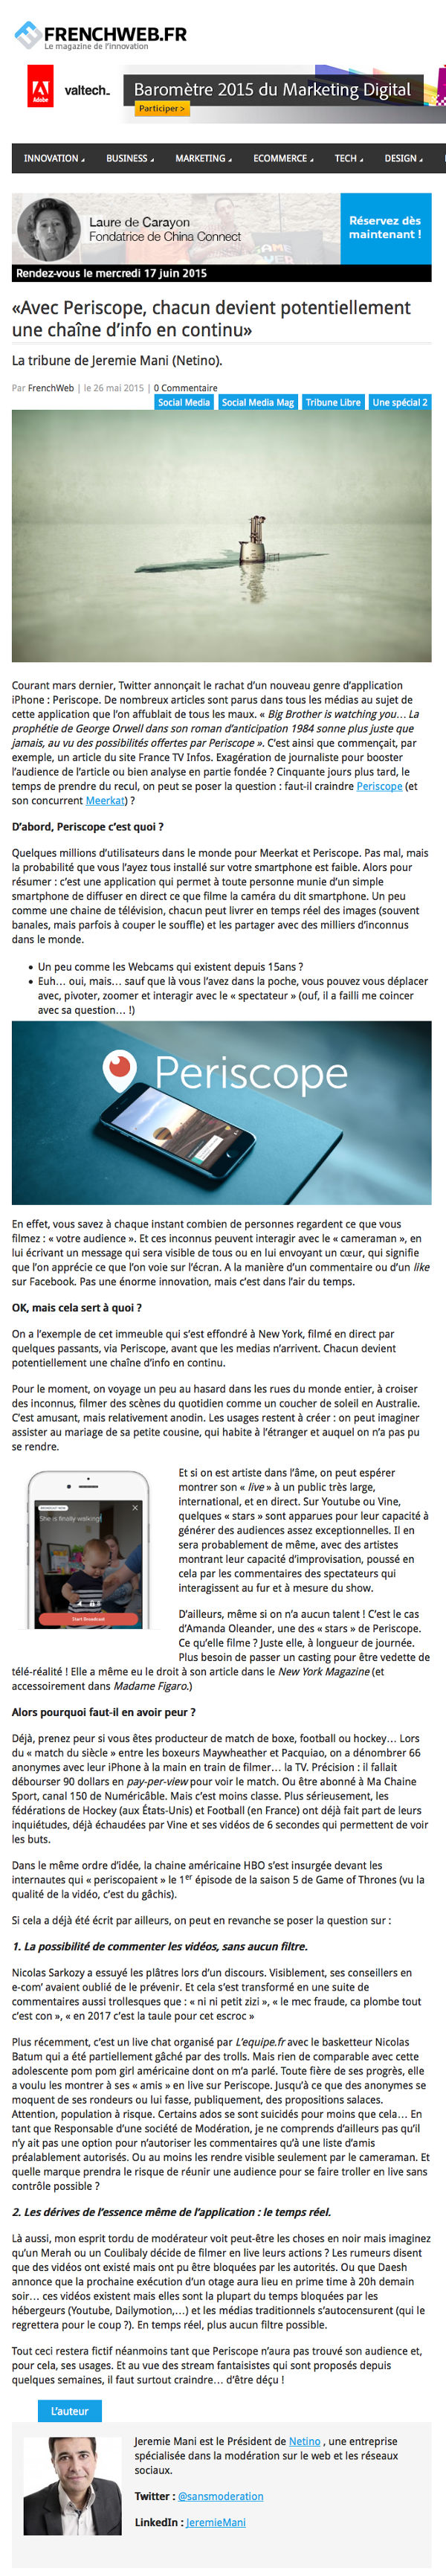 tribune-periscope